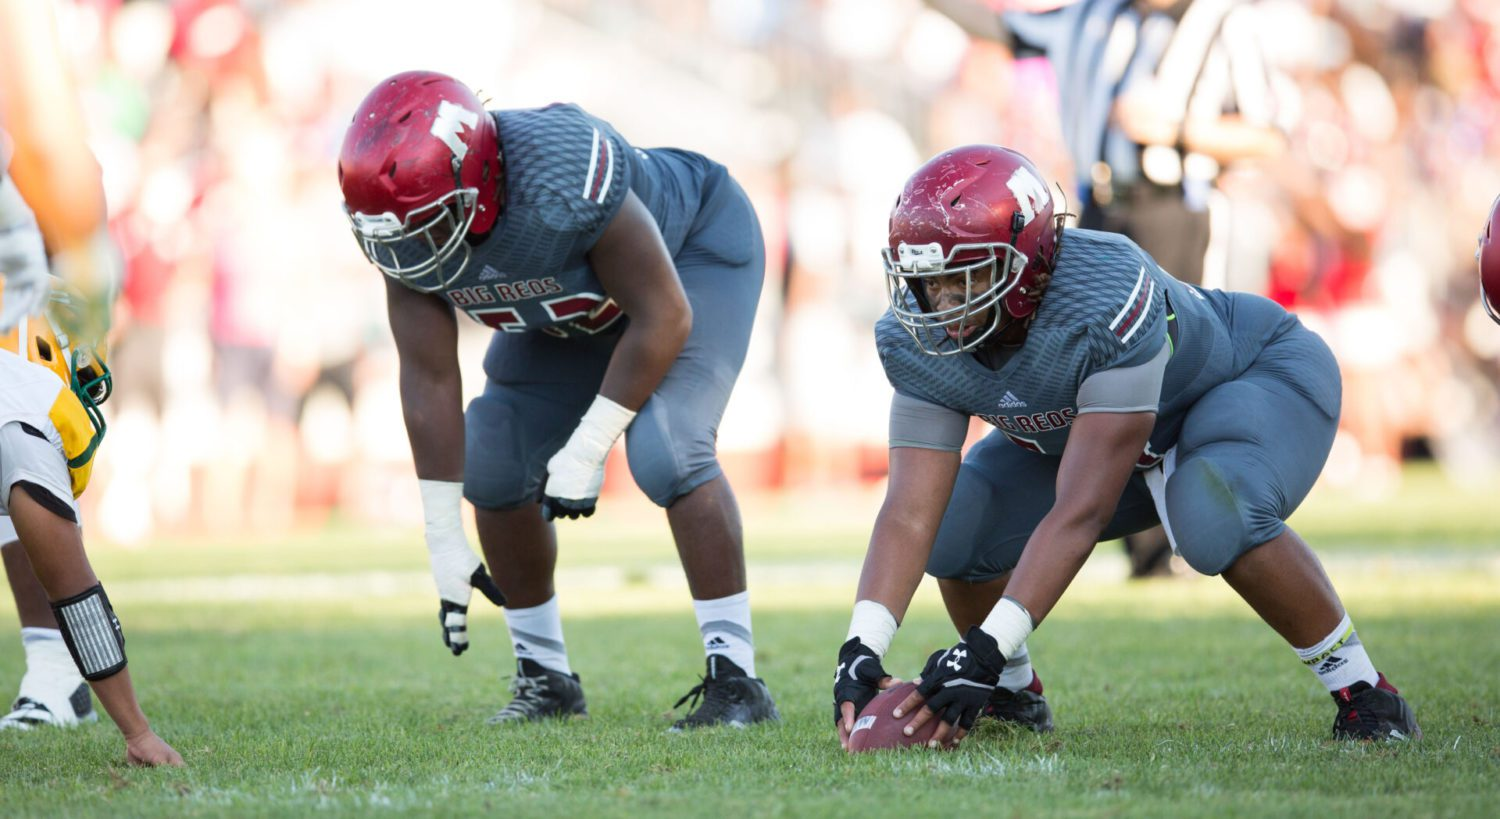 Big Reds expecting a much tougher game in regional rematch with Byron Center